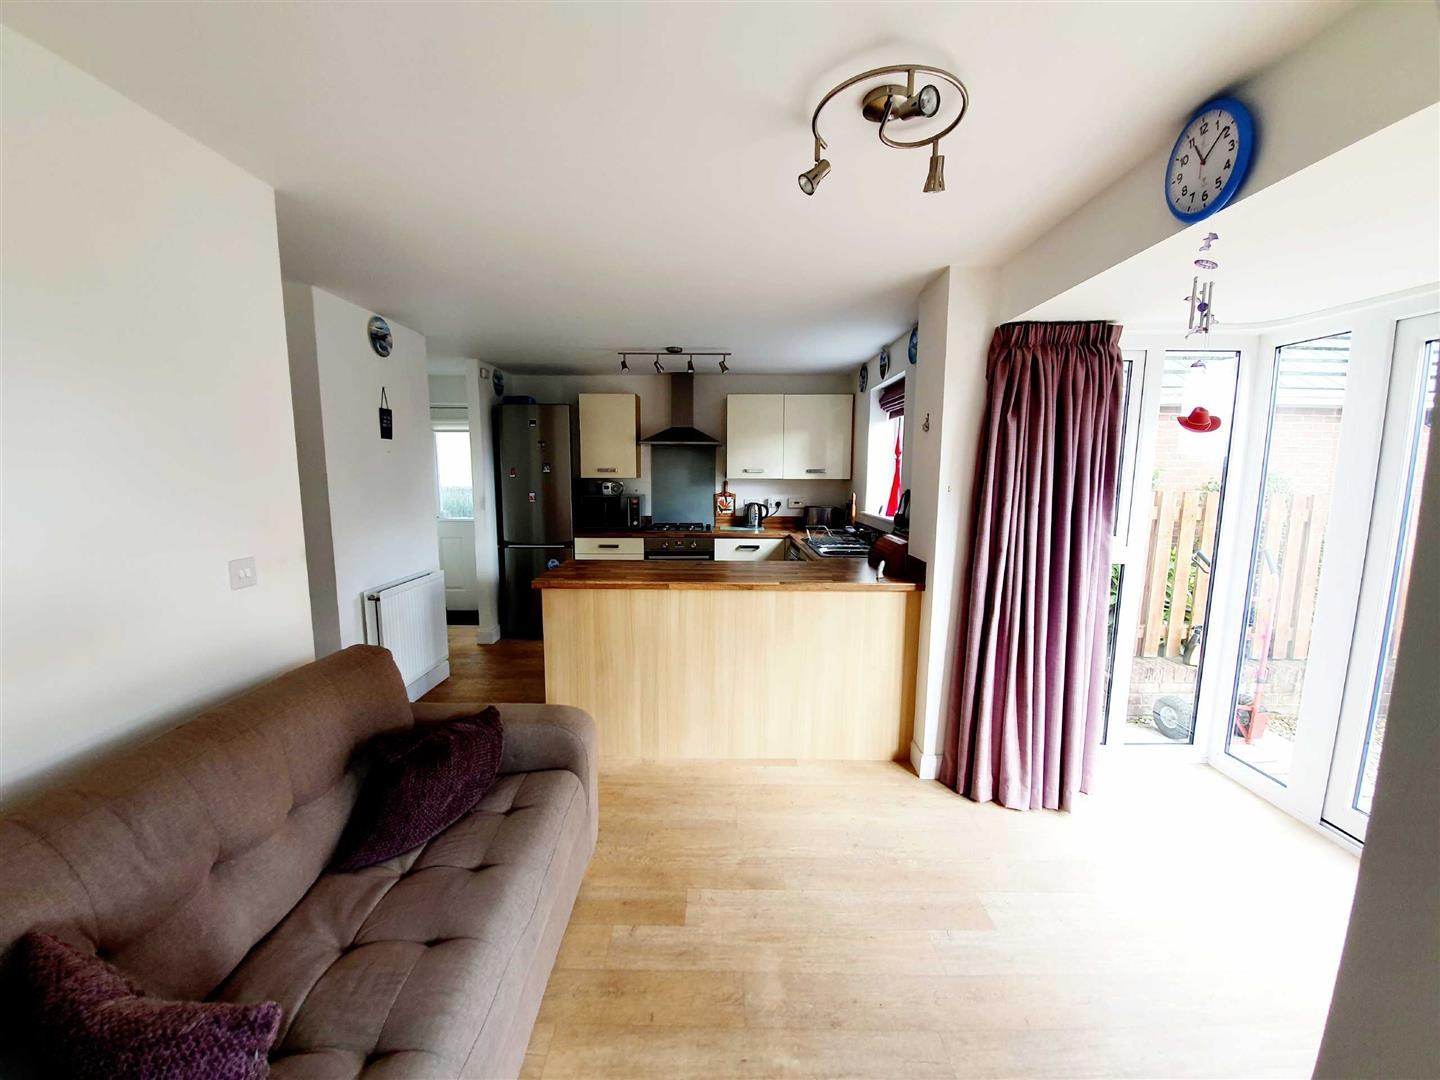 Horizon Way, Loughor, SWANSEA, SA4 6PF